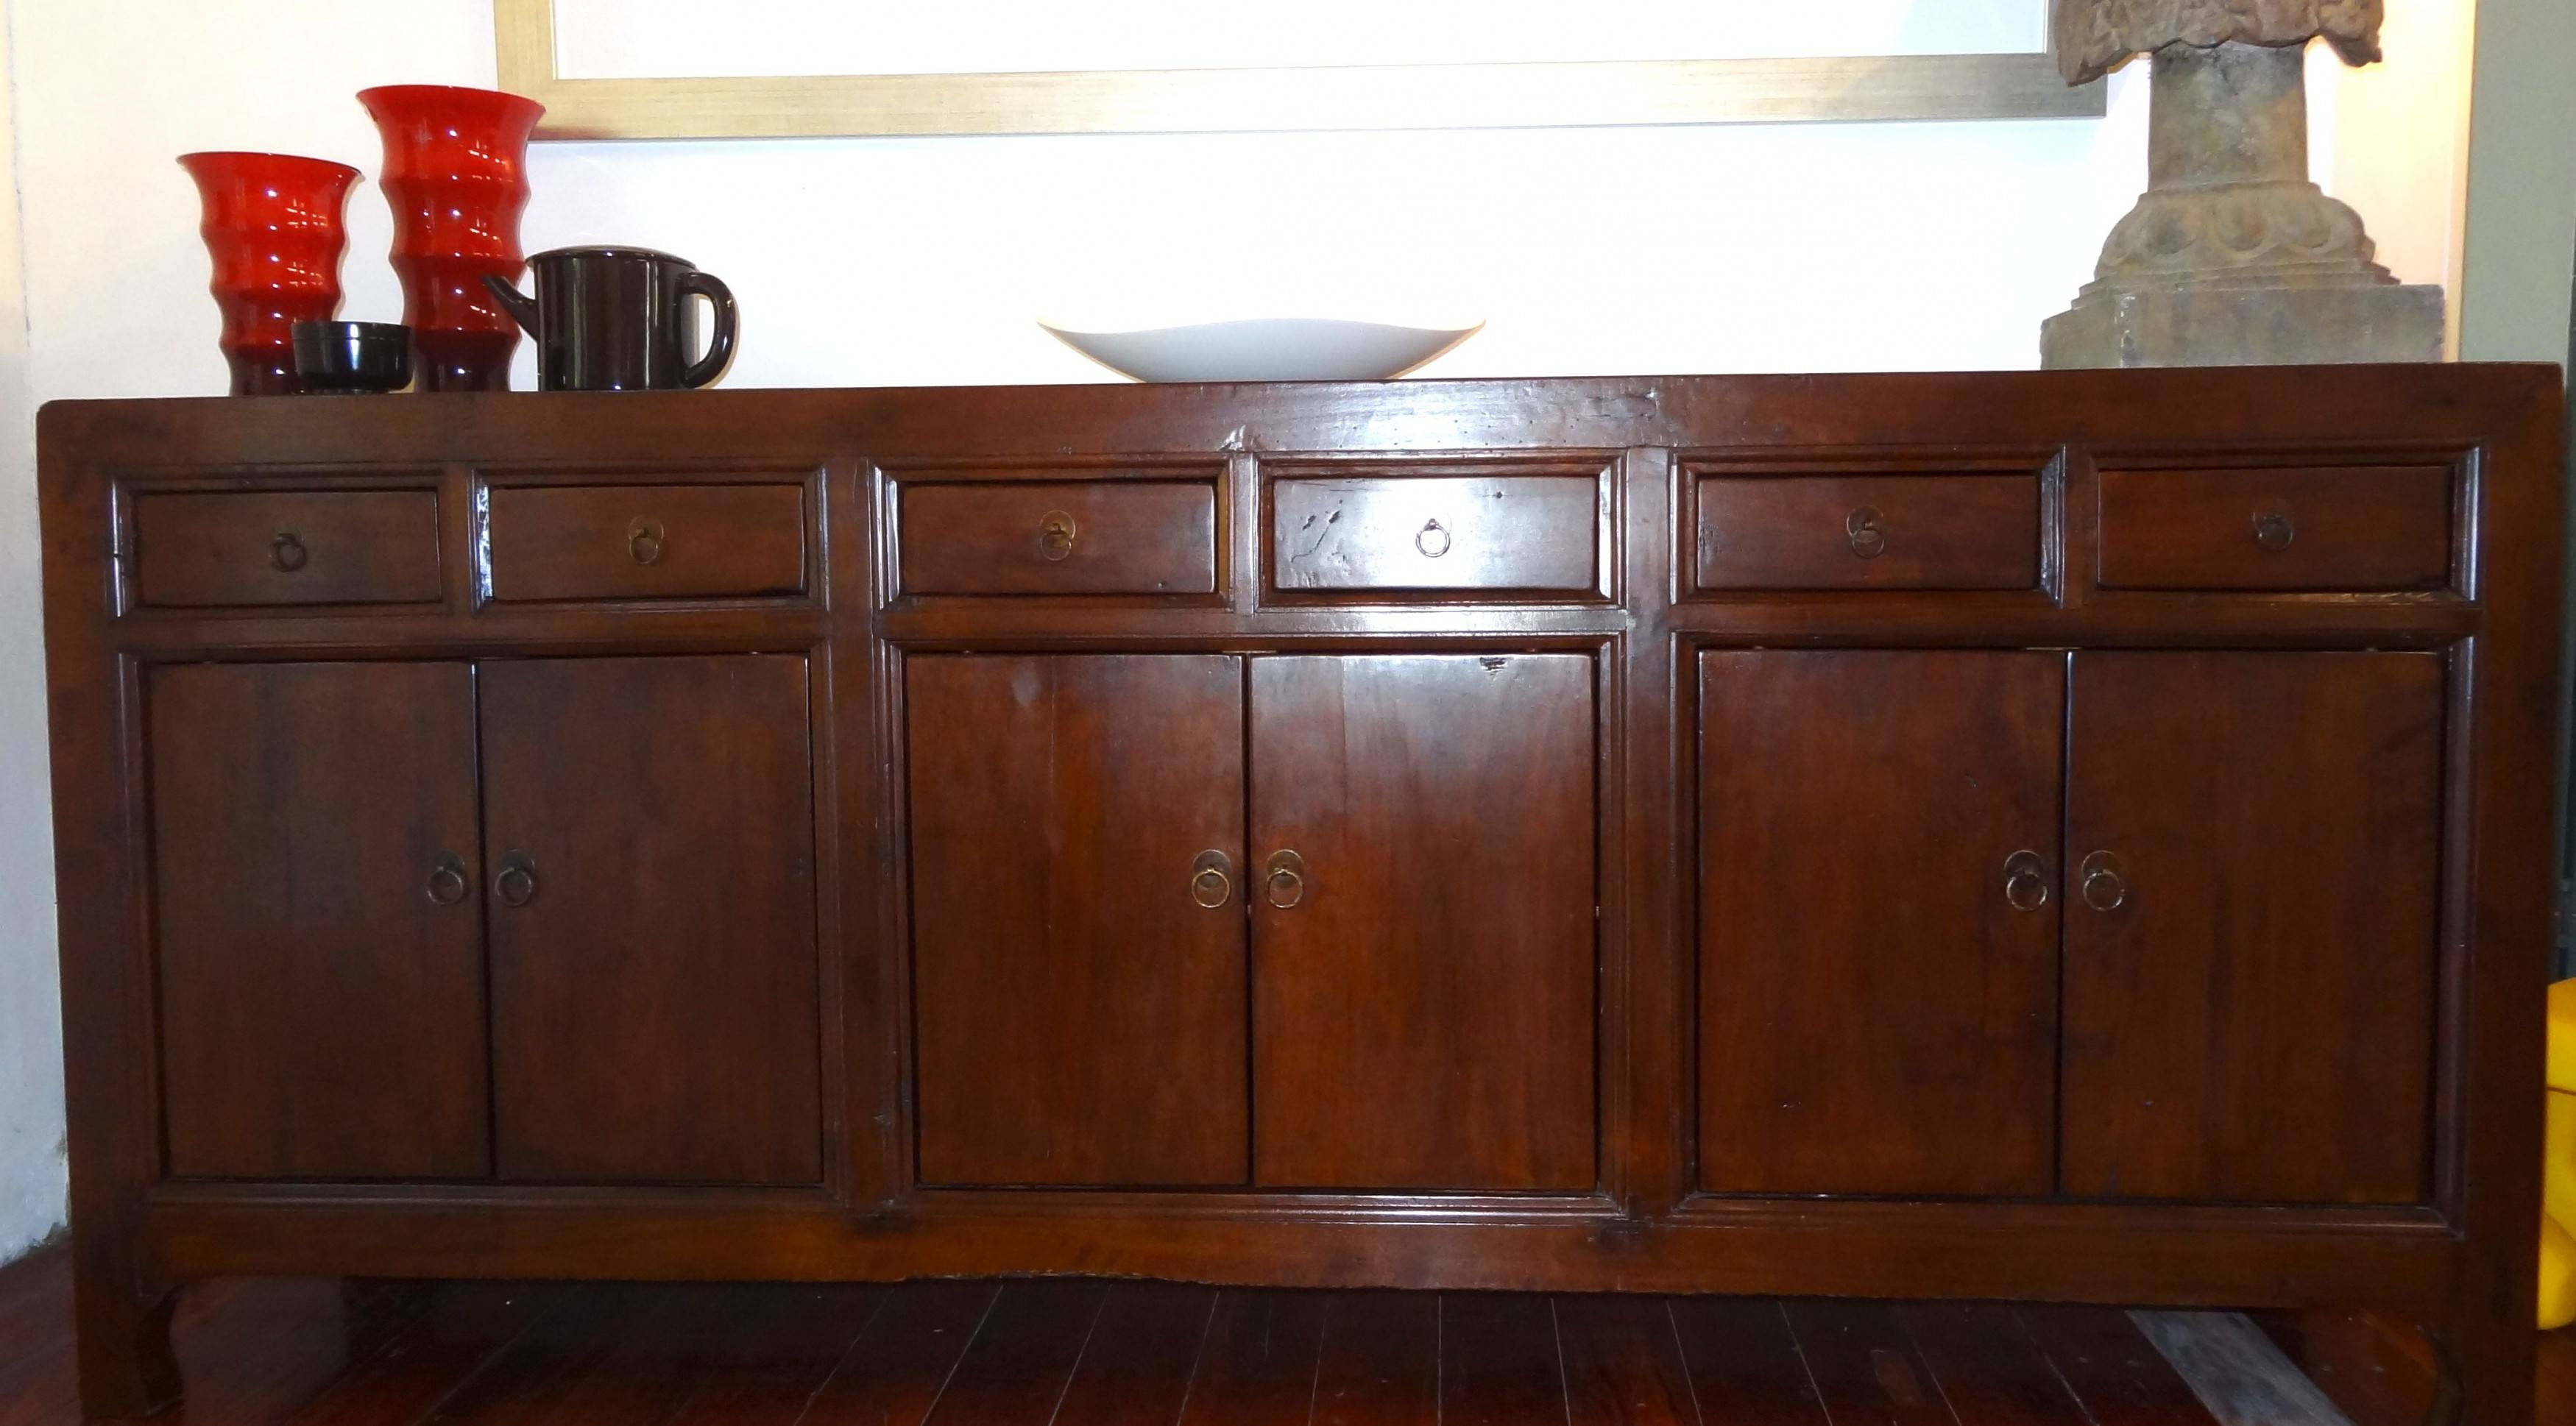 Antique Sideboards | Gallery Categories | Aptos Cruz inside Chinese Sideboards (Image 9 of 30)